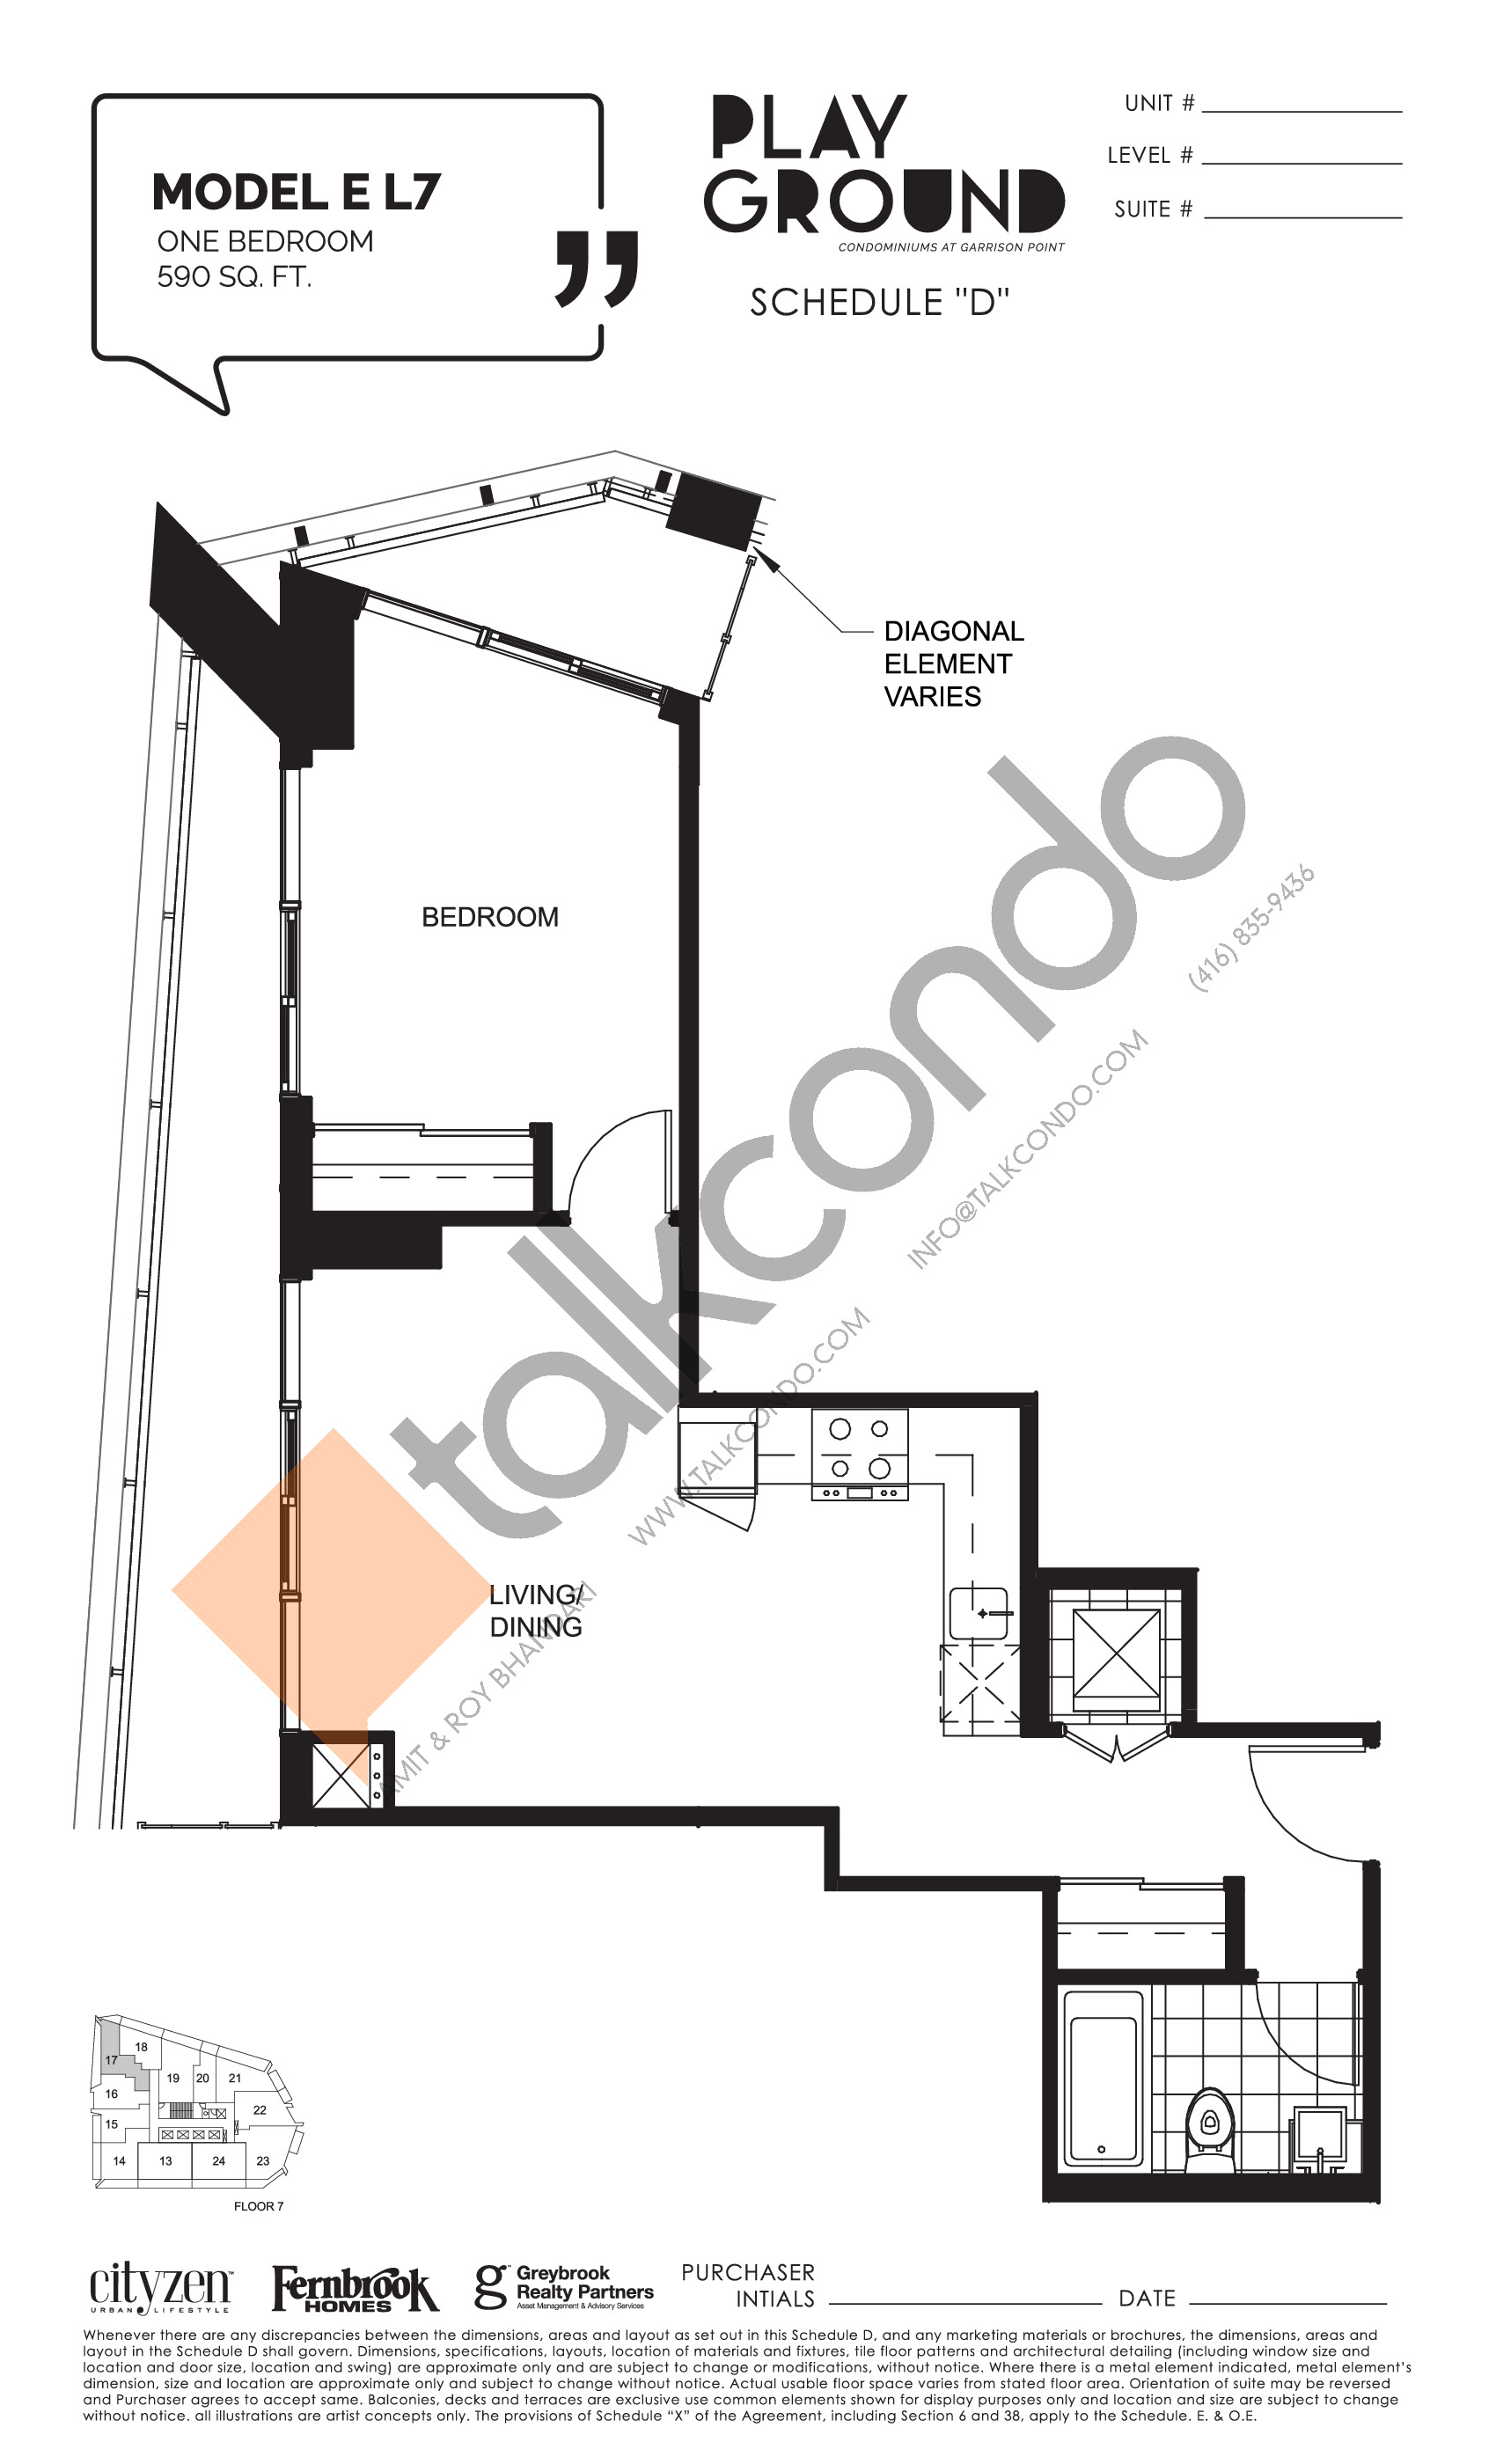 Model E L7 Floor Plan at Playground Condos at Garrison Point - 590 sq.ft